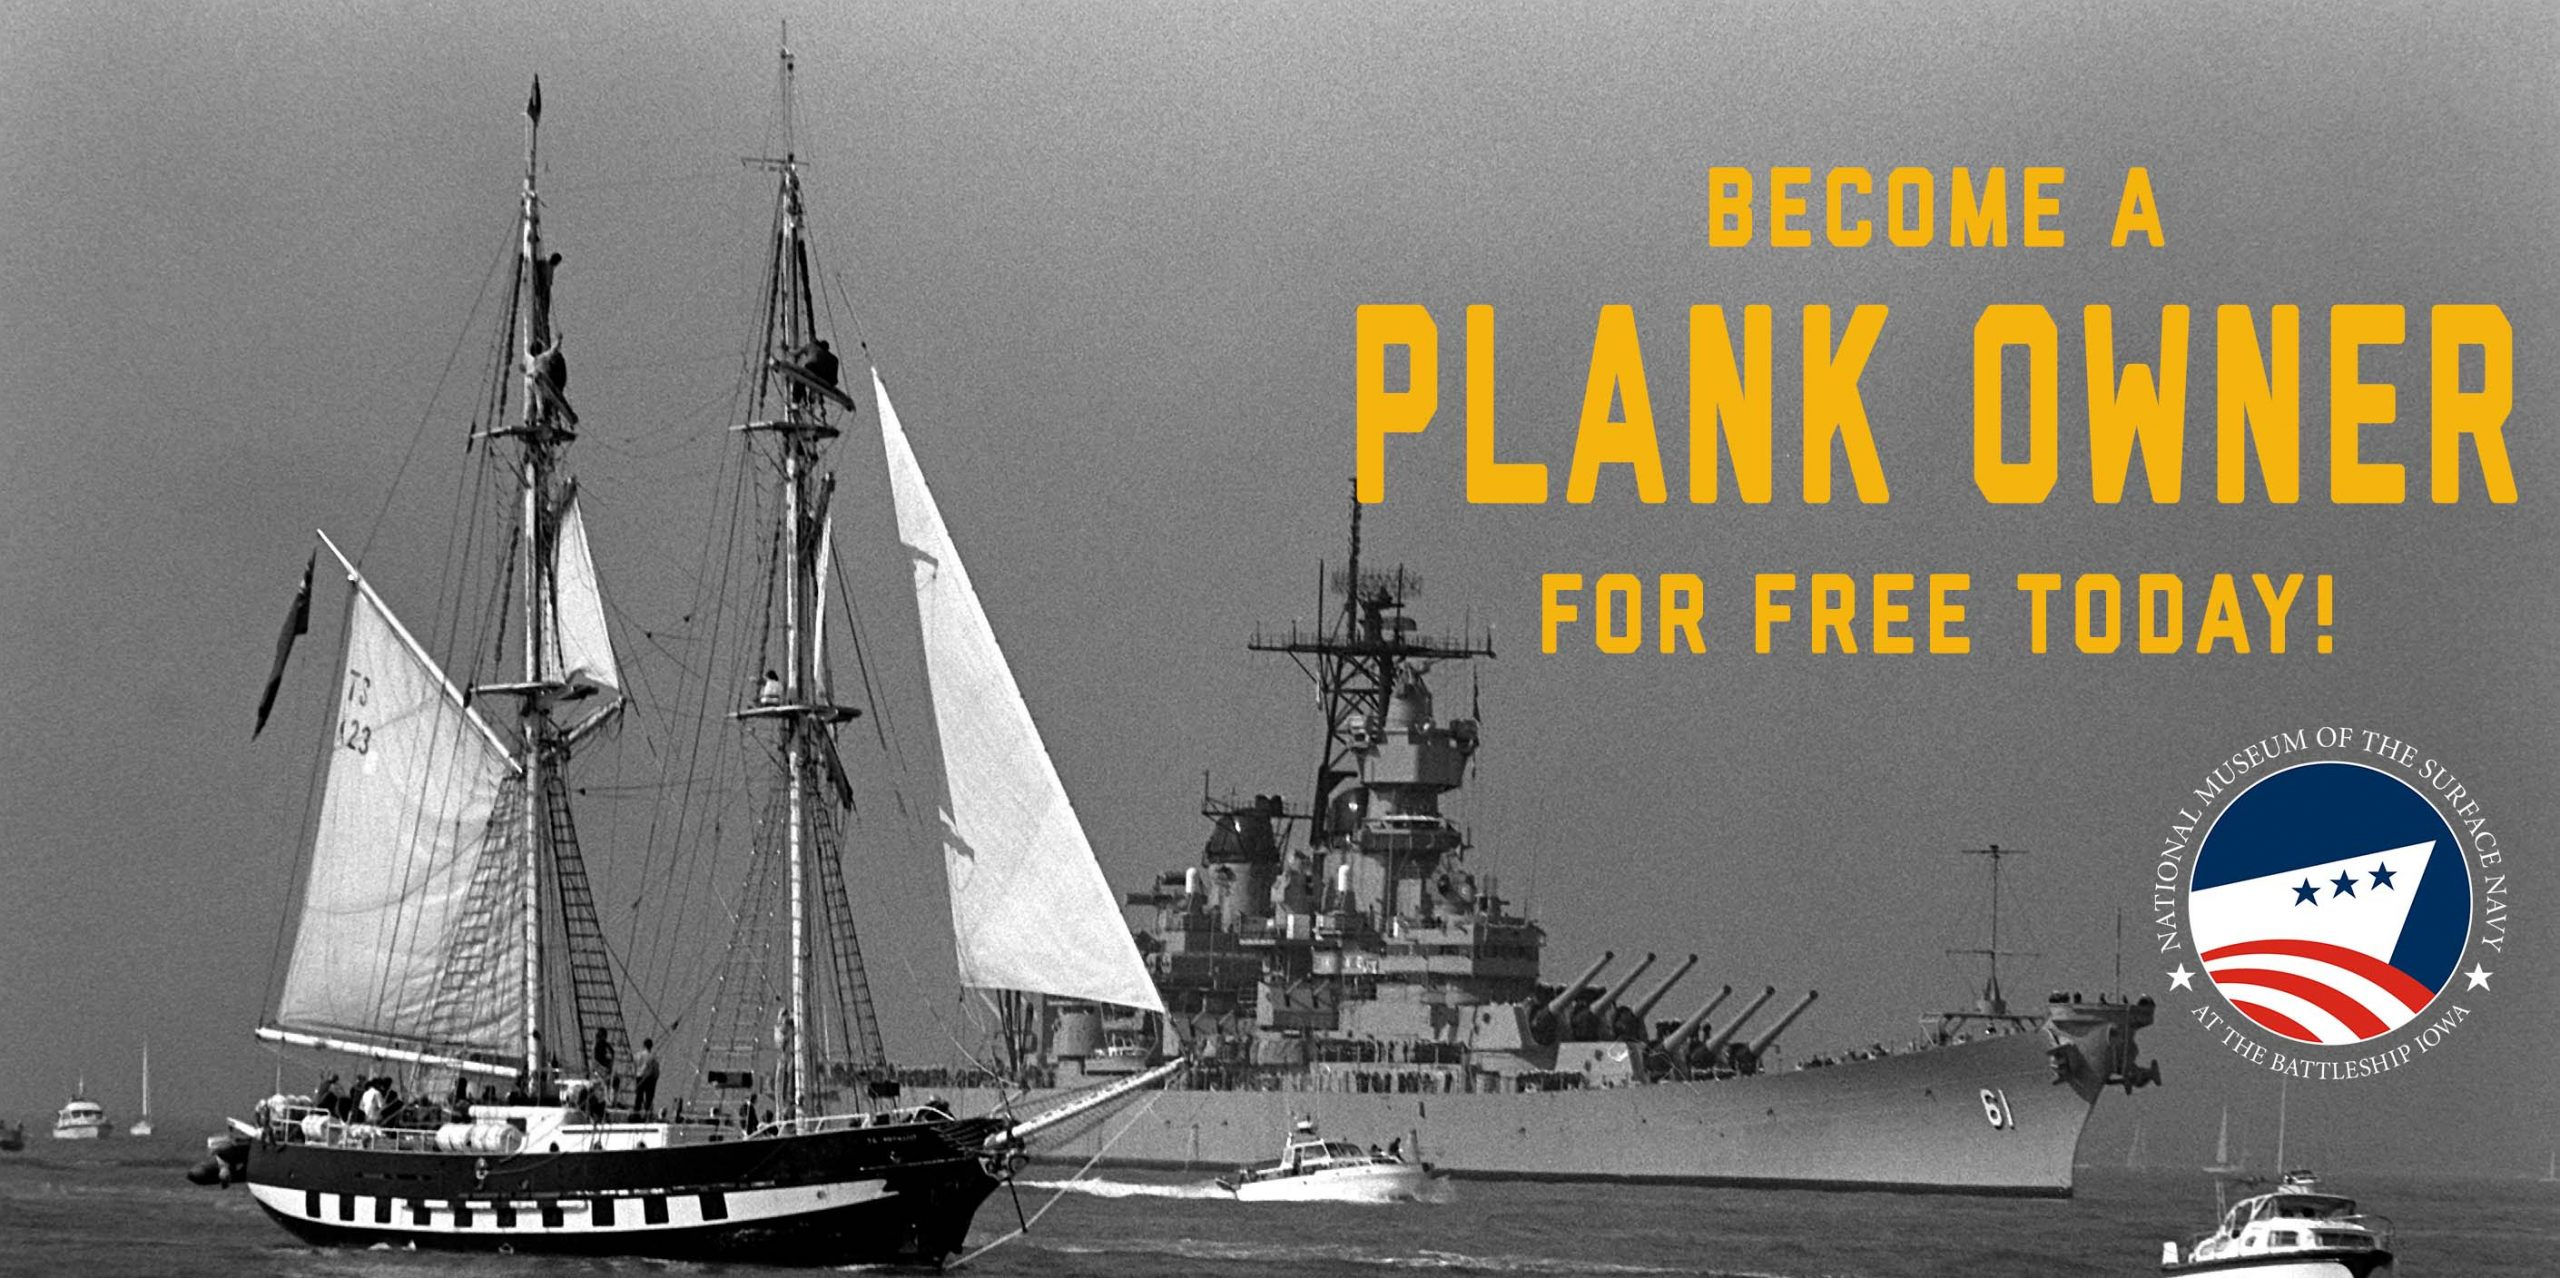 Become a Plank Owner